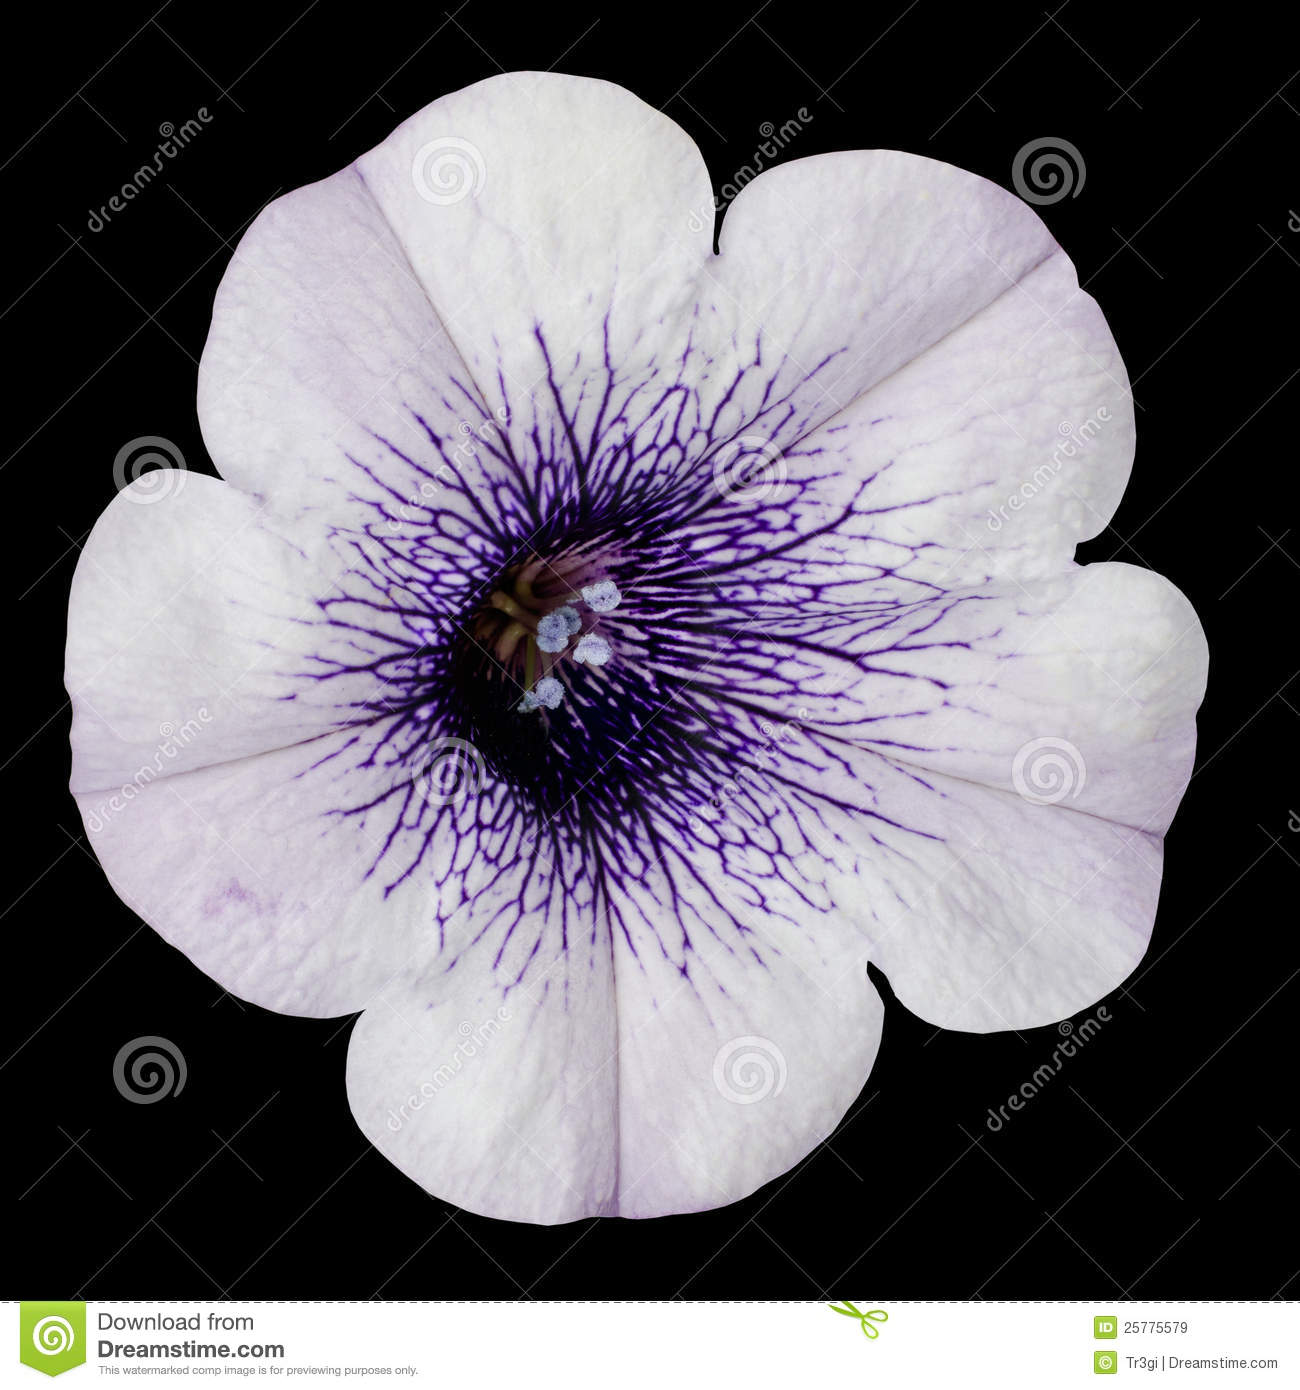 white flower with purple center  flower, Beautiful flower